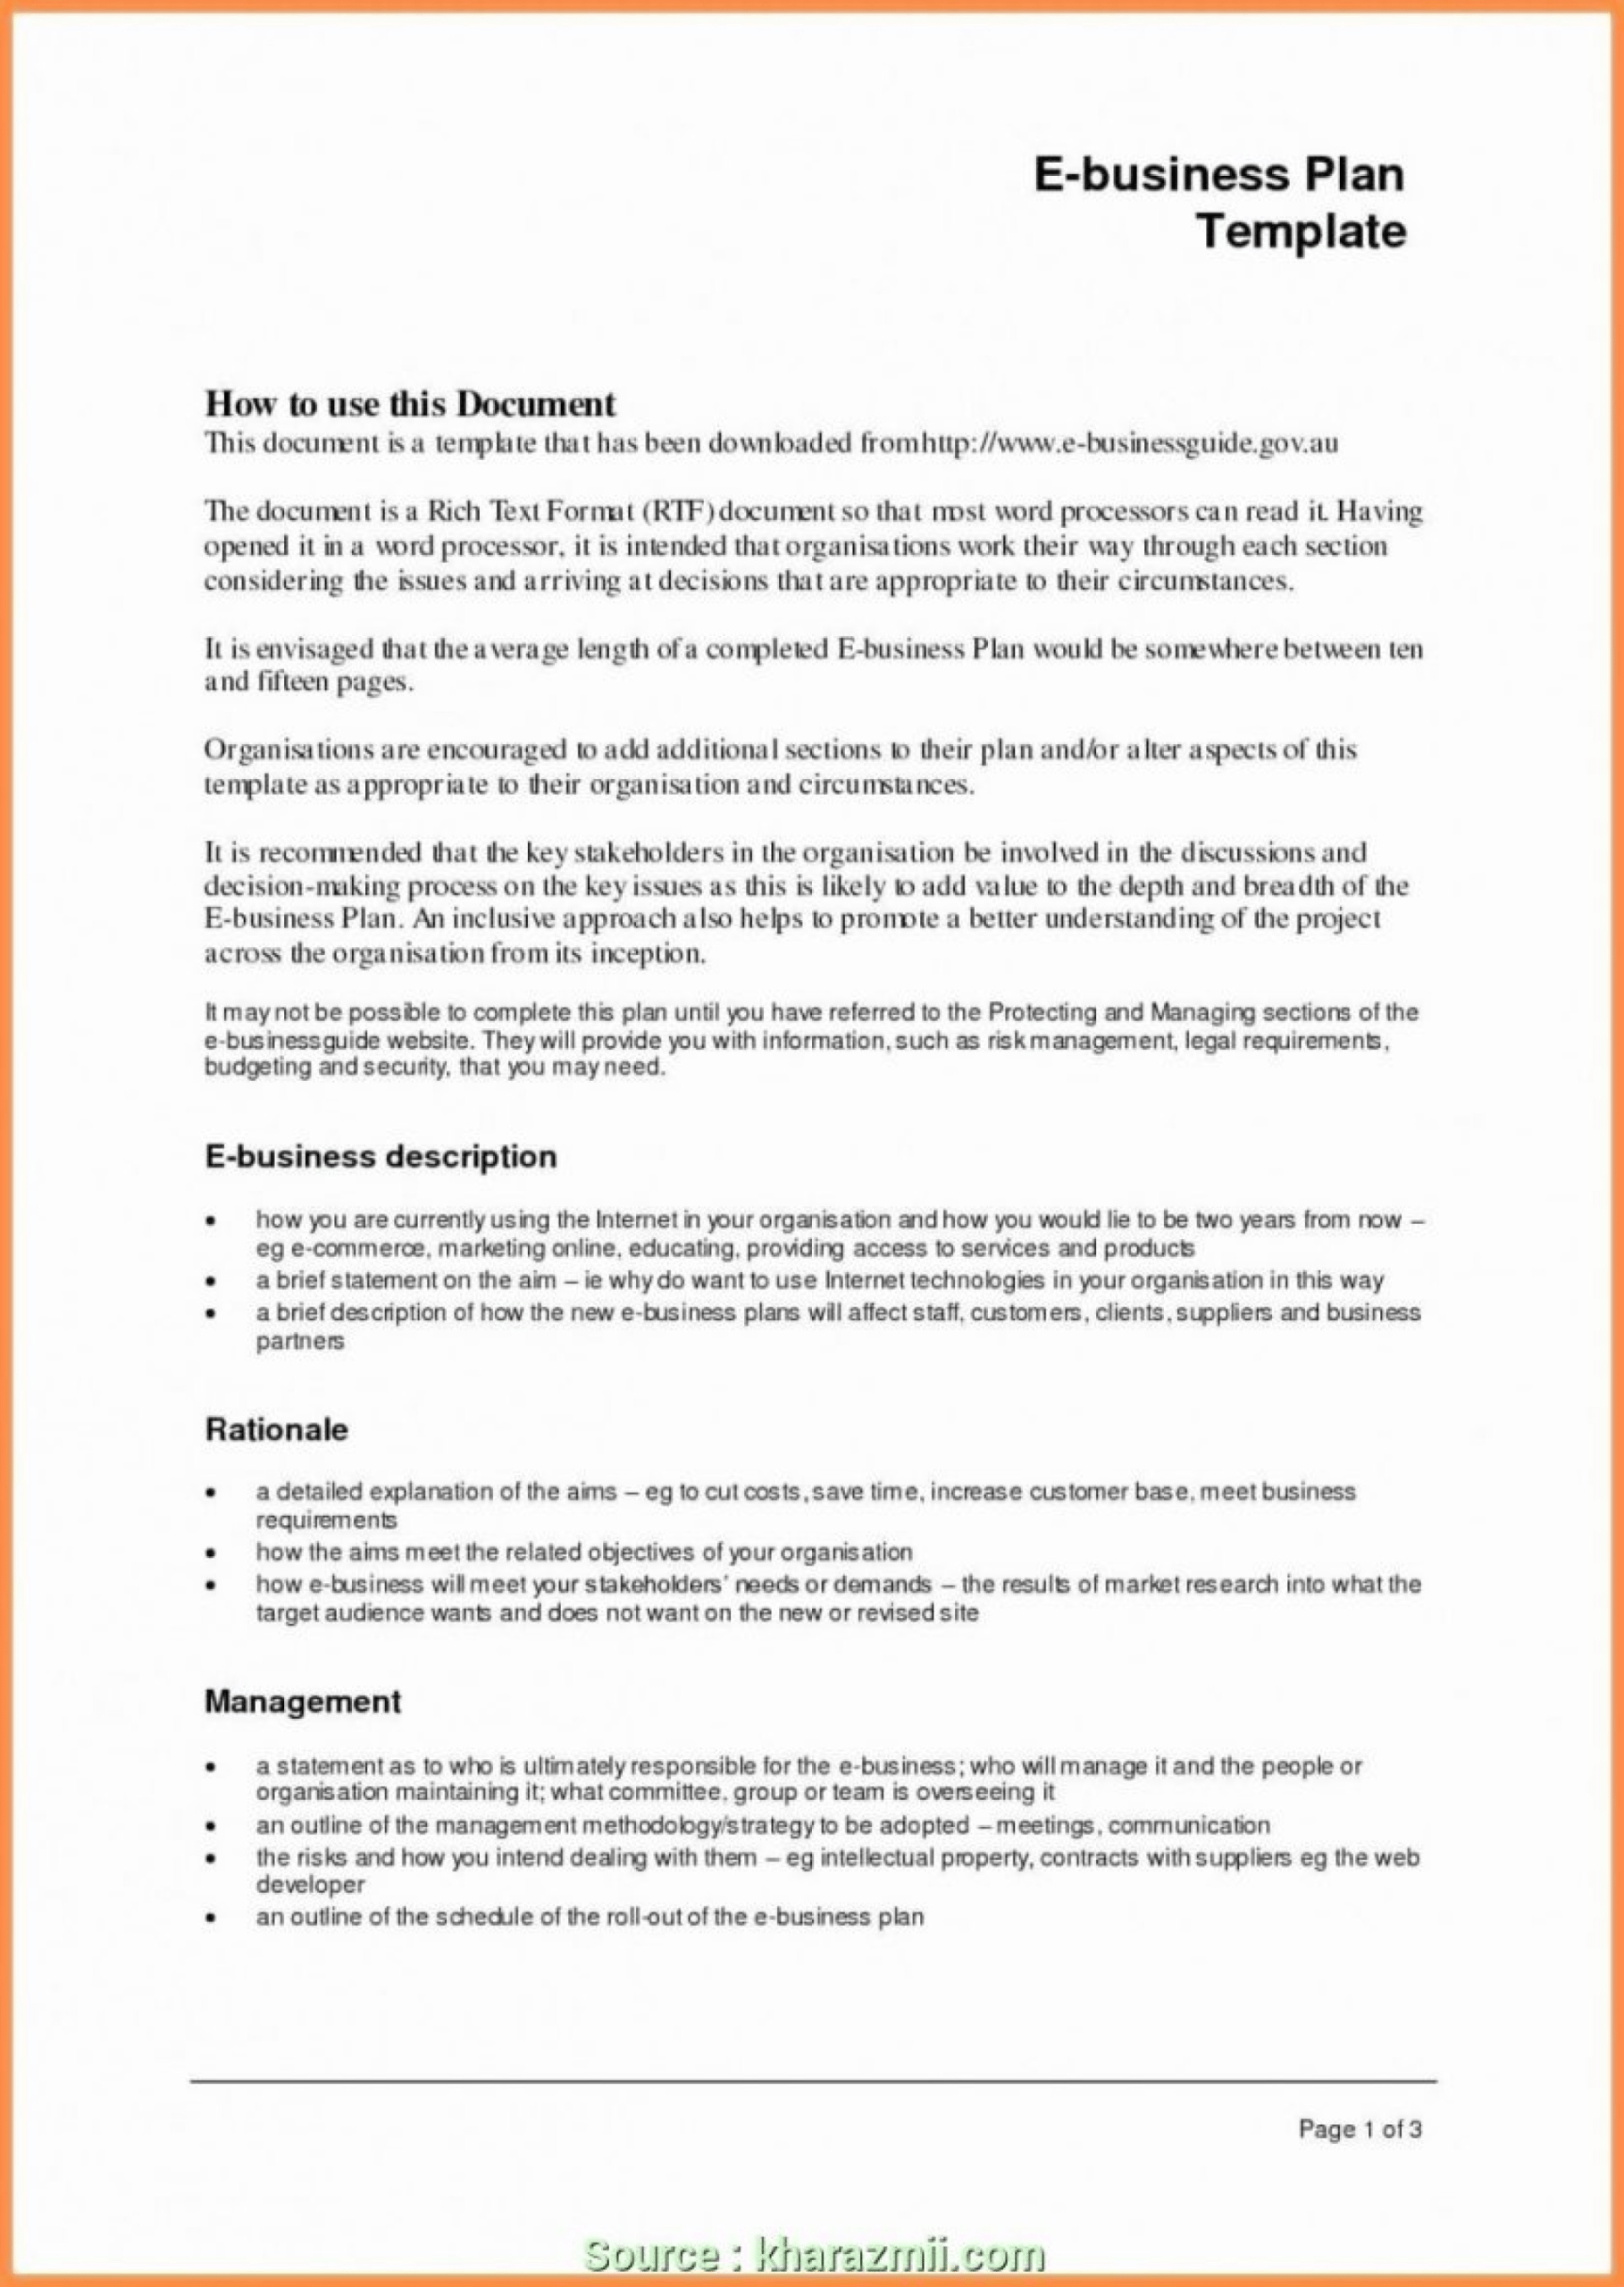 021 Free Ecommerce Business Plan Template Doc Download Intended For Ecommerce Website Business Plan Template